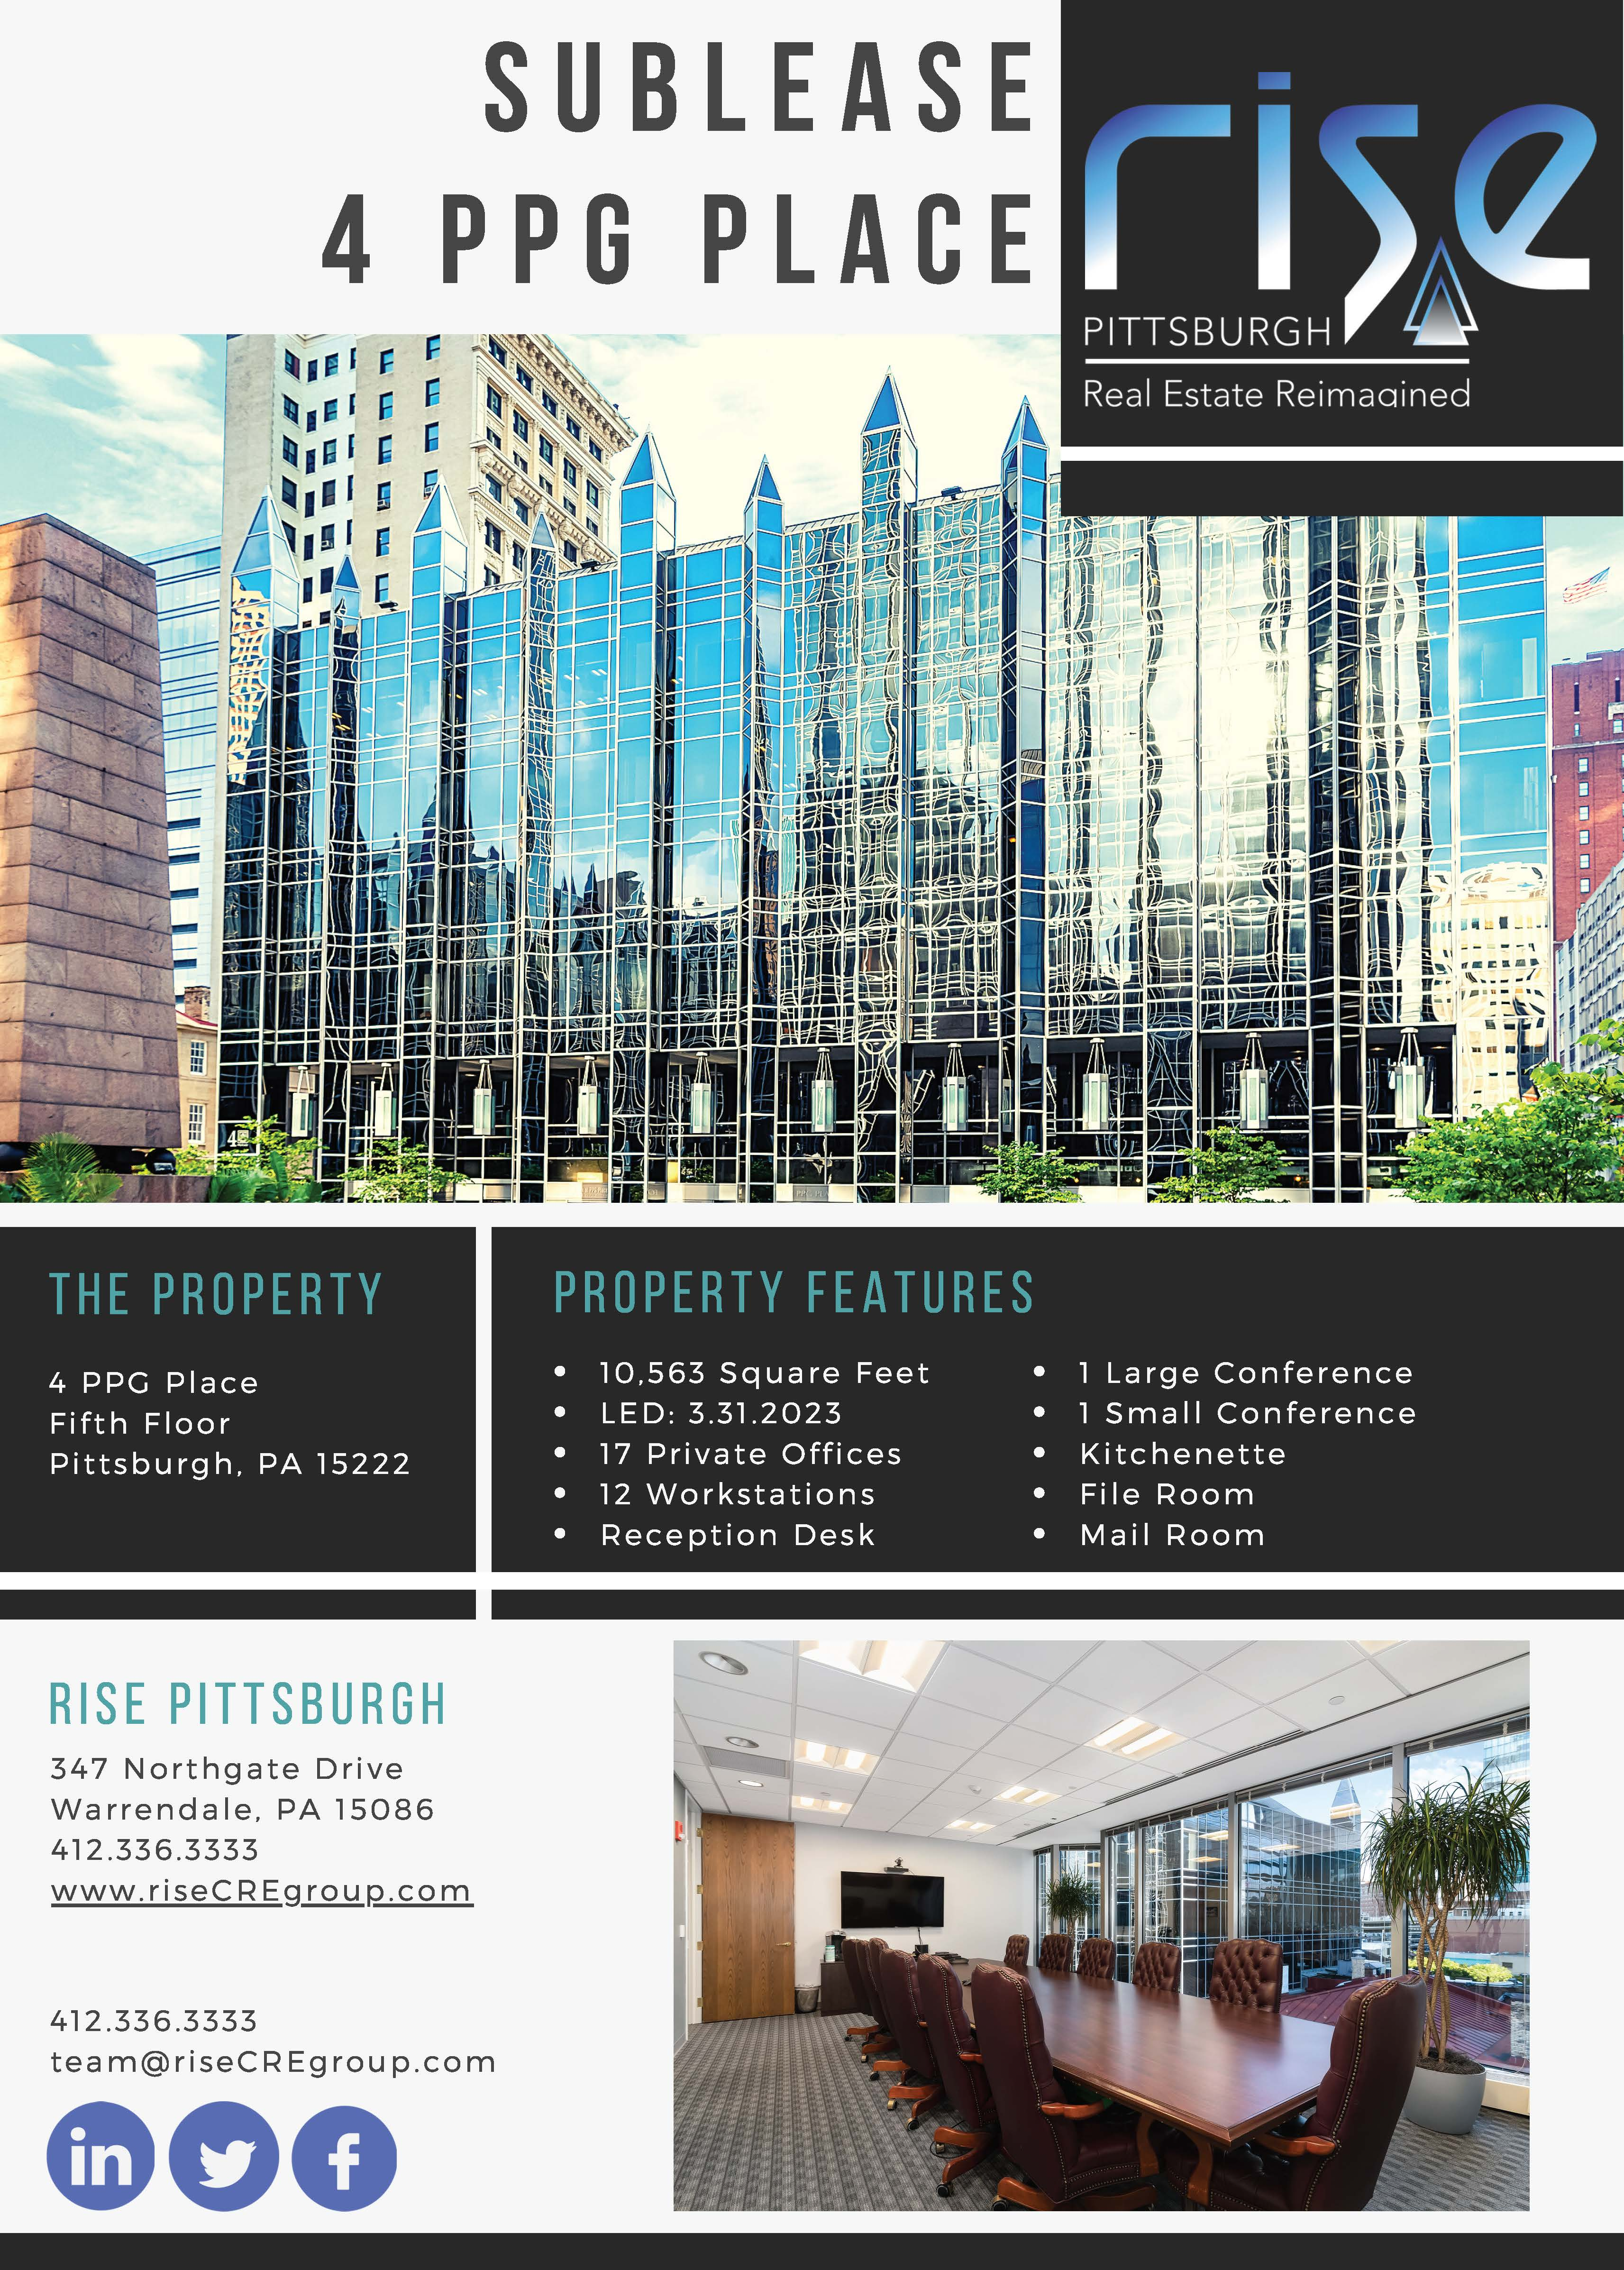 4 PPG Sublease Flyer